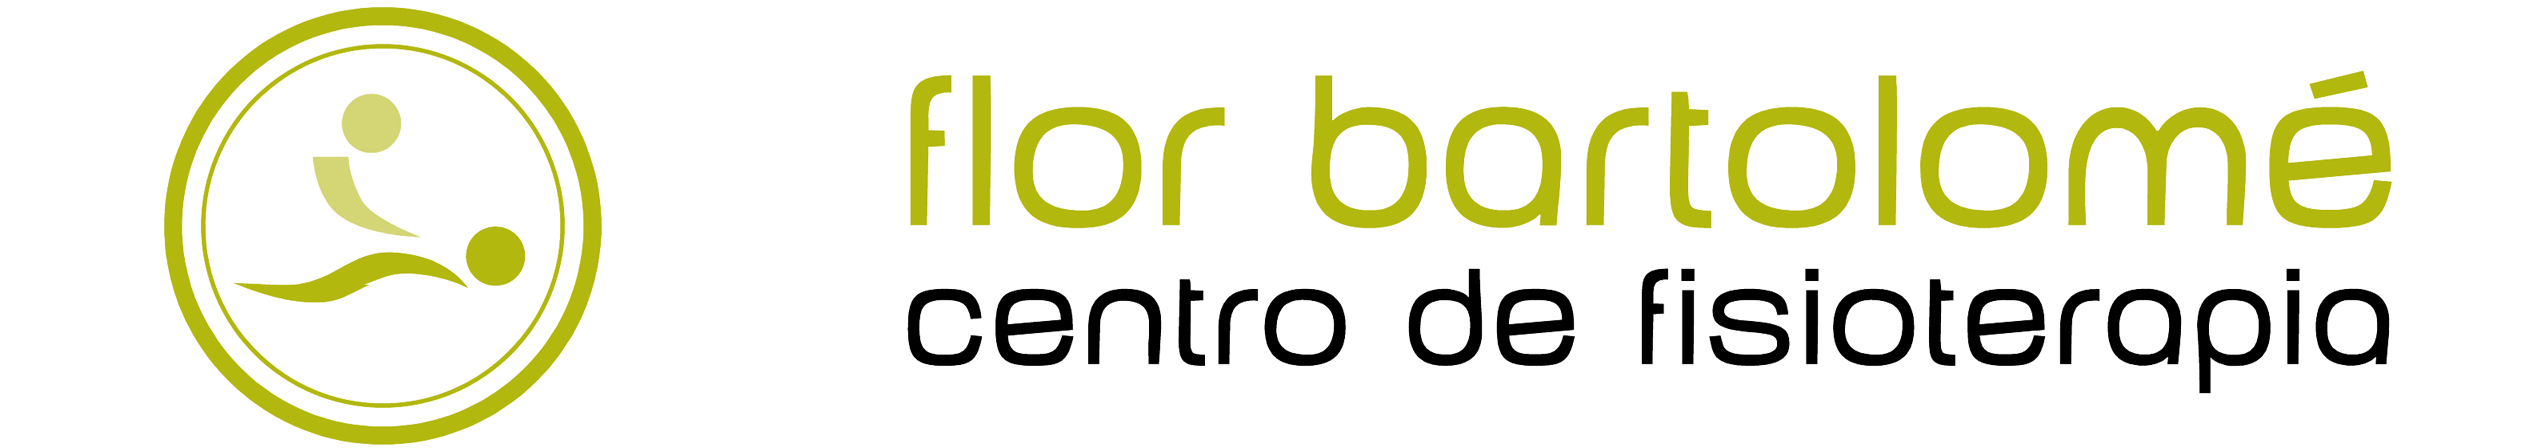 Centro de Fisioterapia Flor Bartolomé